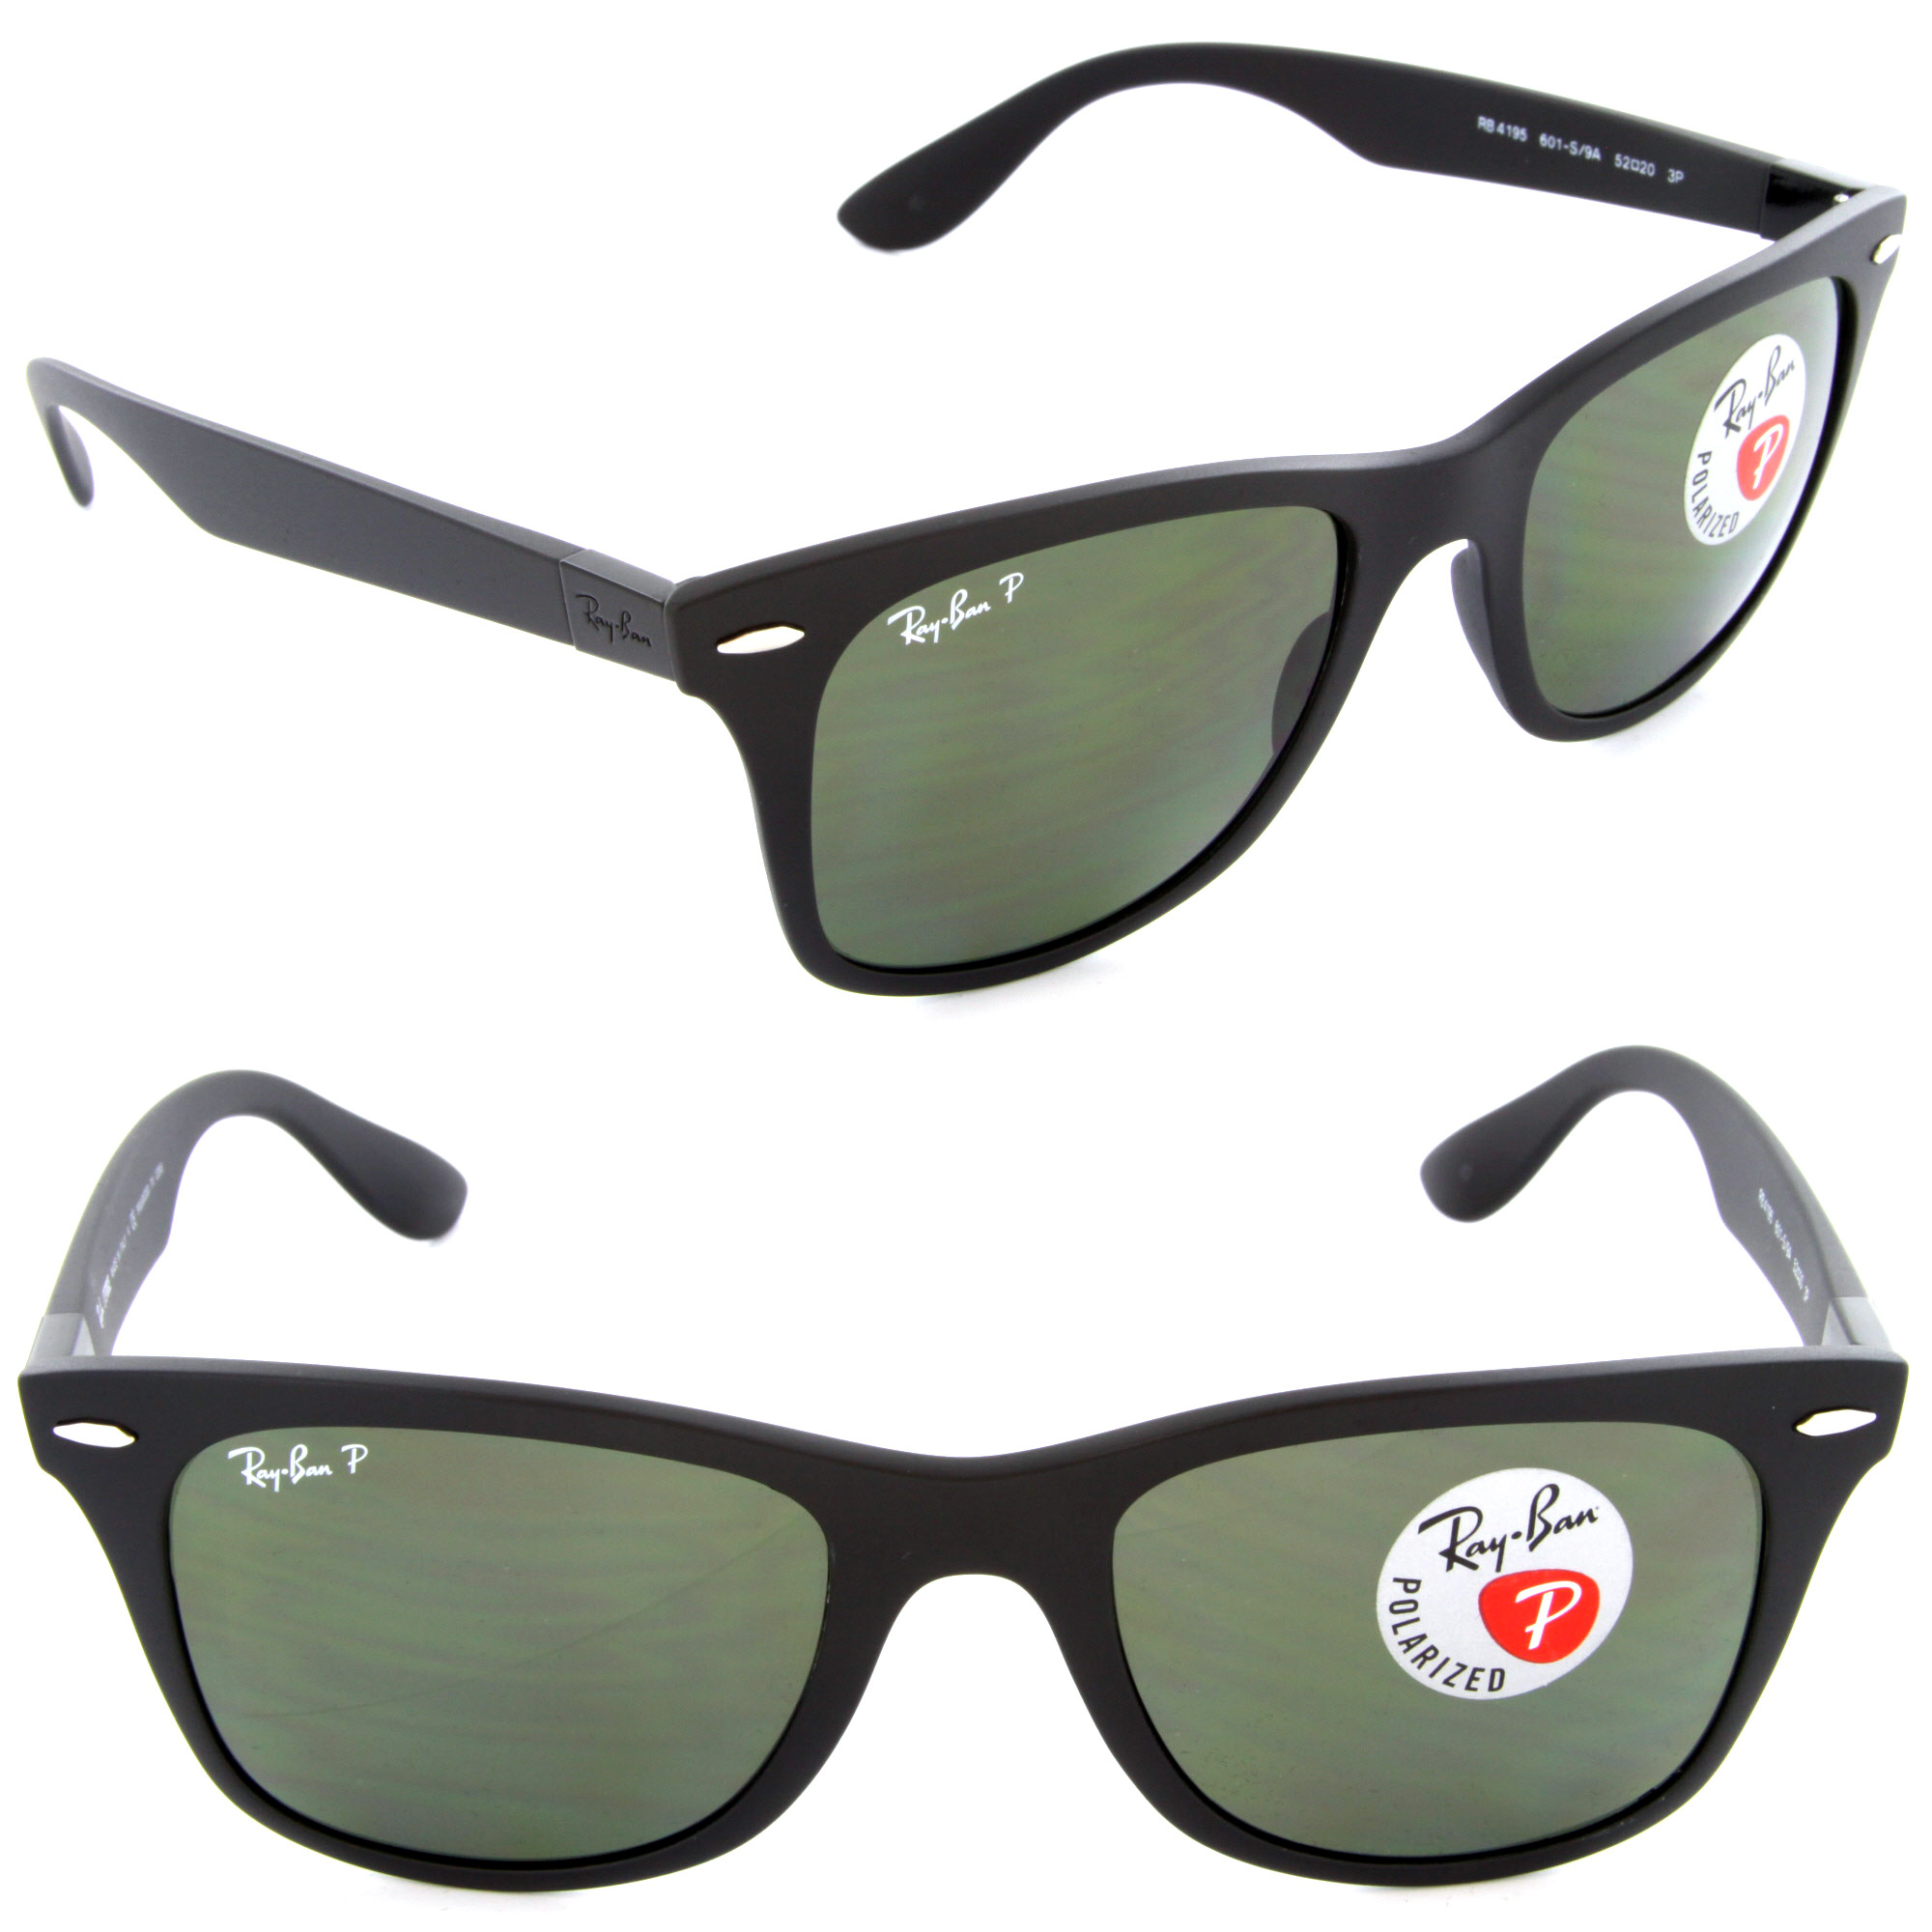 Ray Ban Wayfarer 150 Temple Length  64203a5a923b1